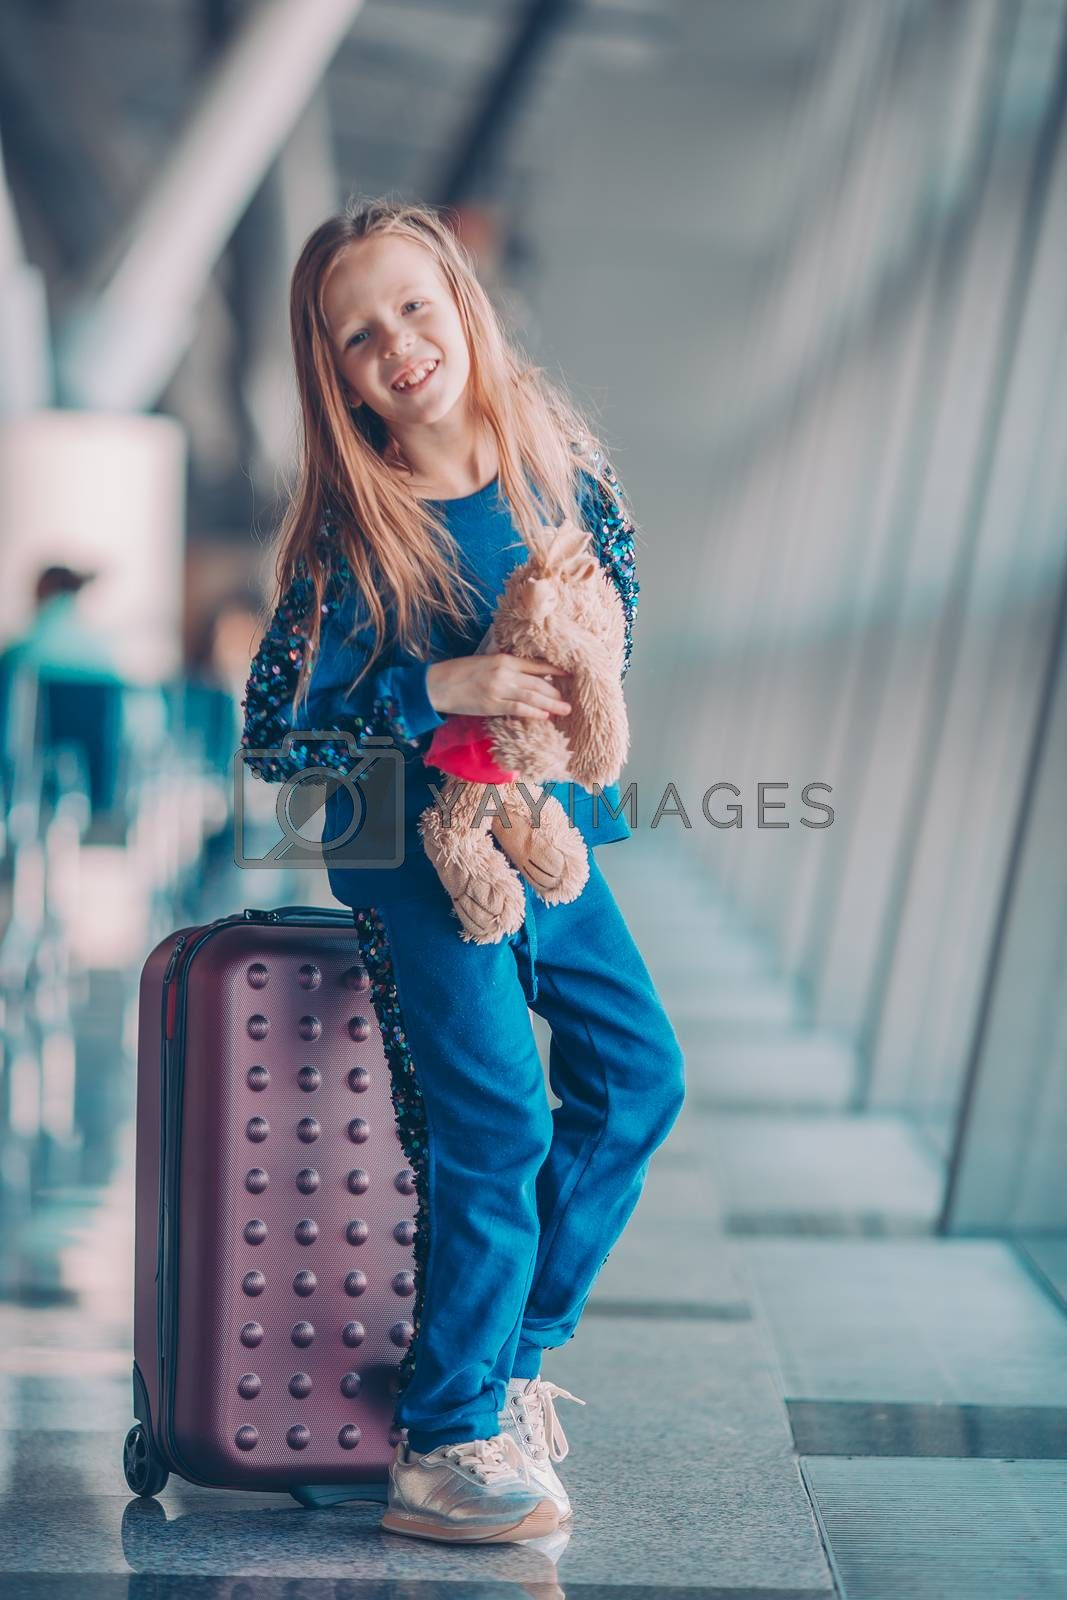 Little adorable kid in airport waiting for boarding indoors